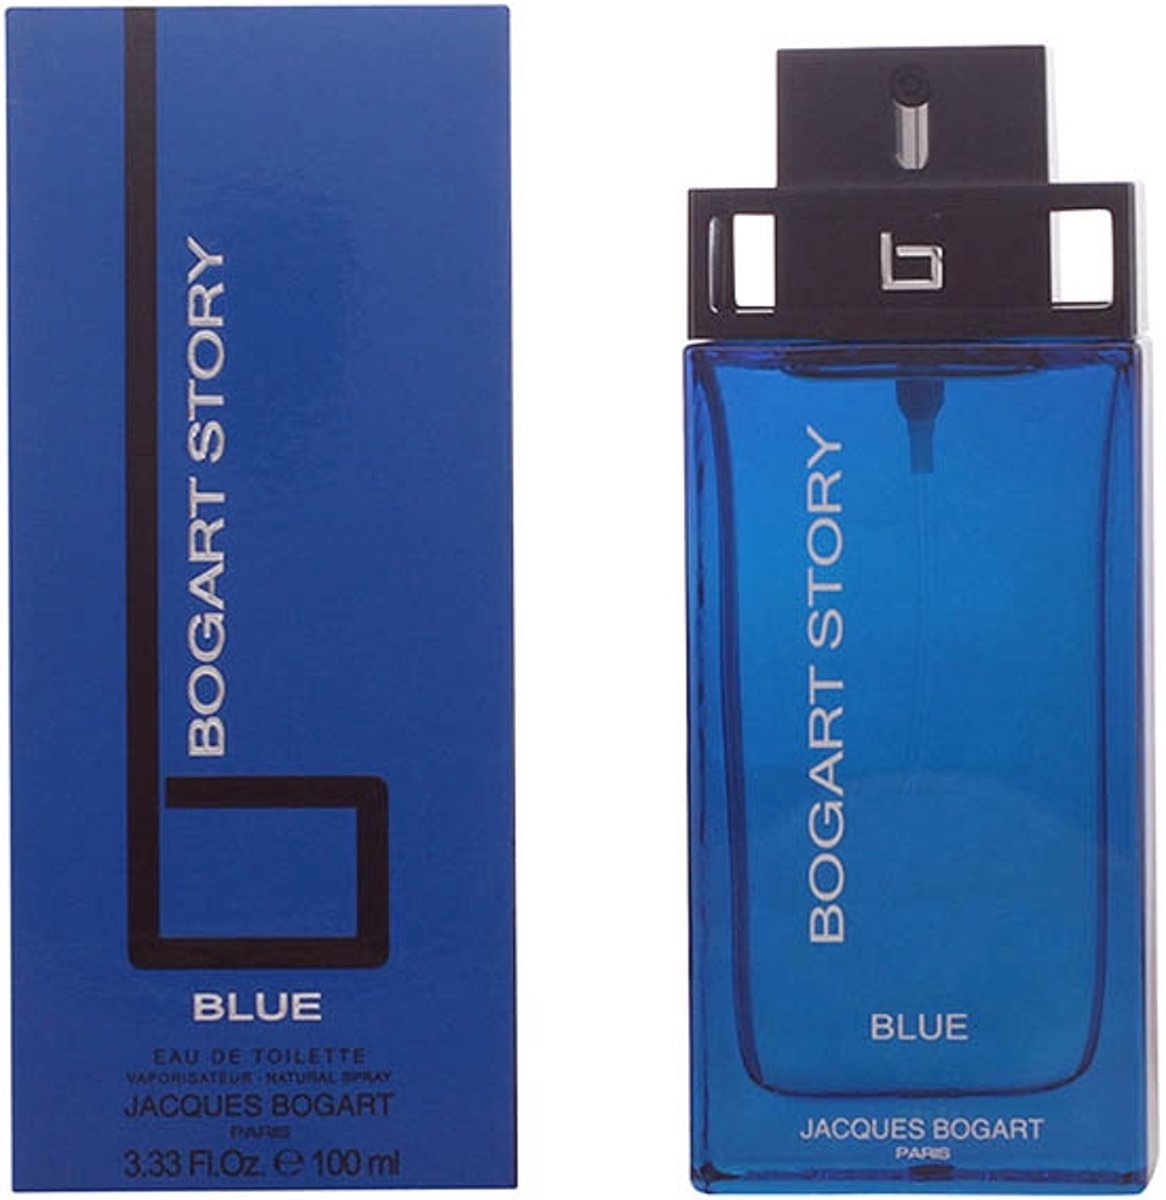 Jacques Bogart Story Blue Edt Spray 100 ml